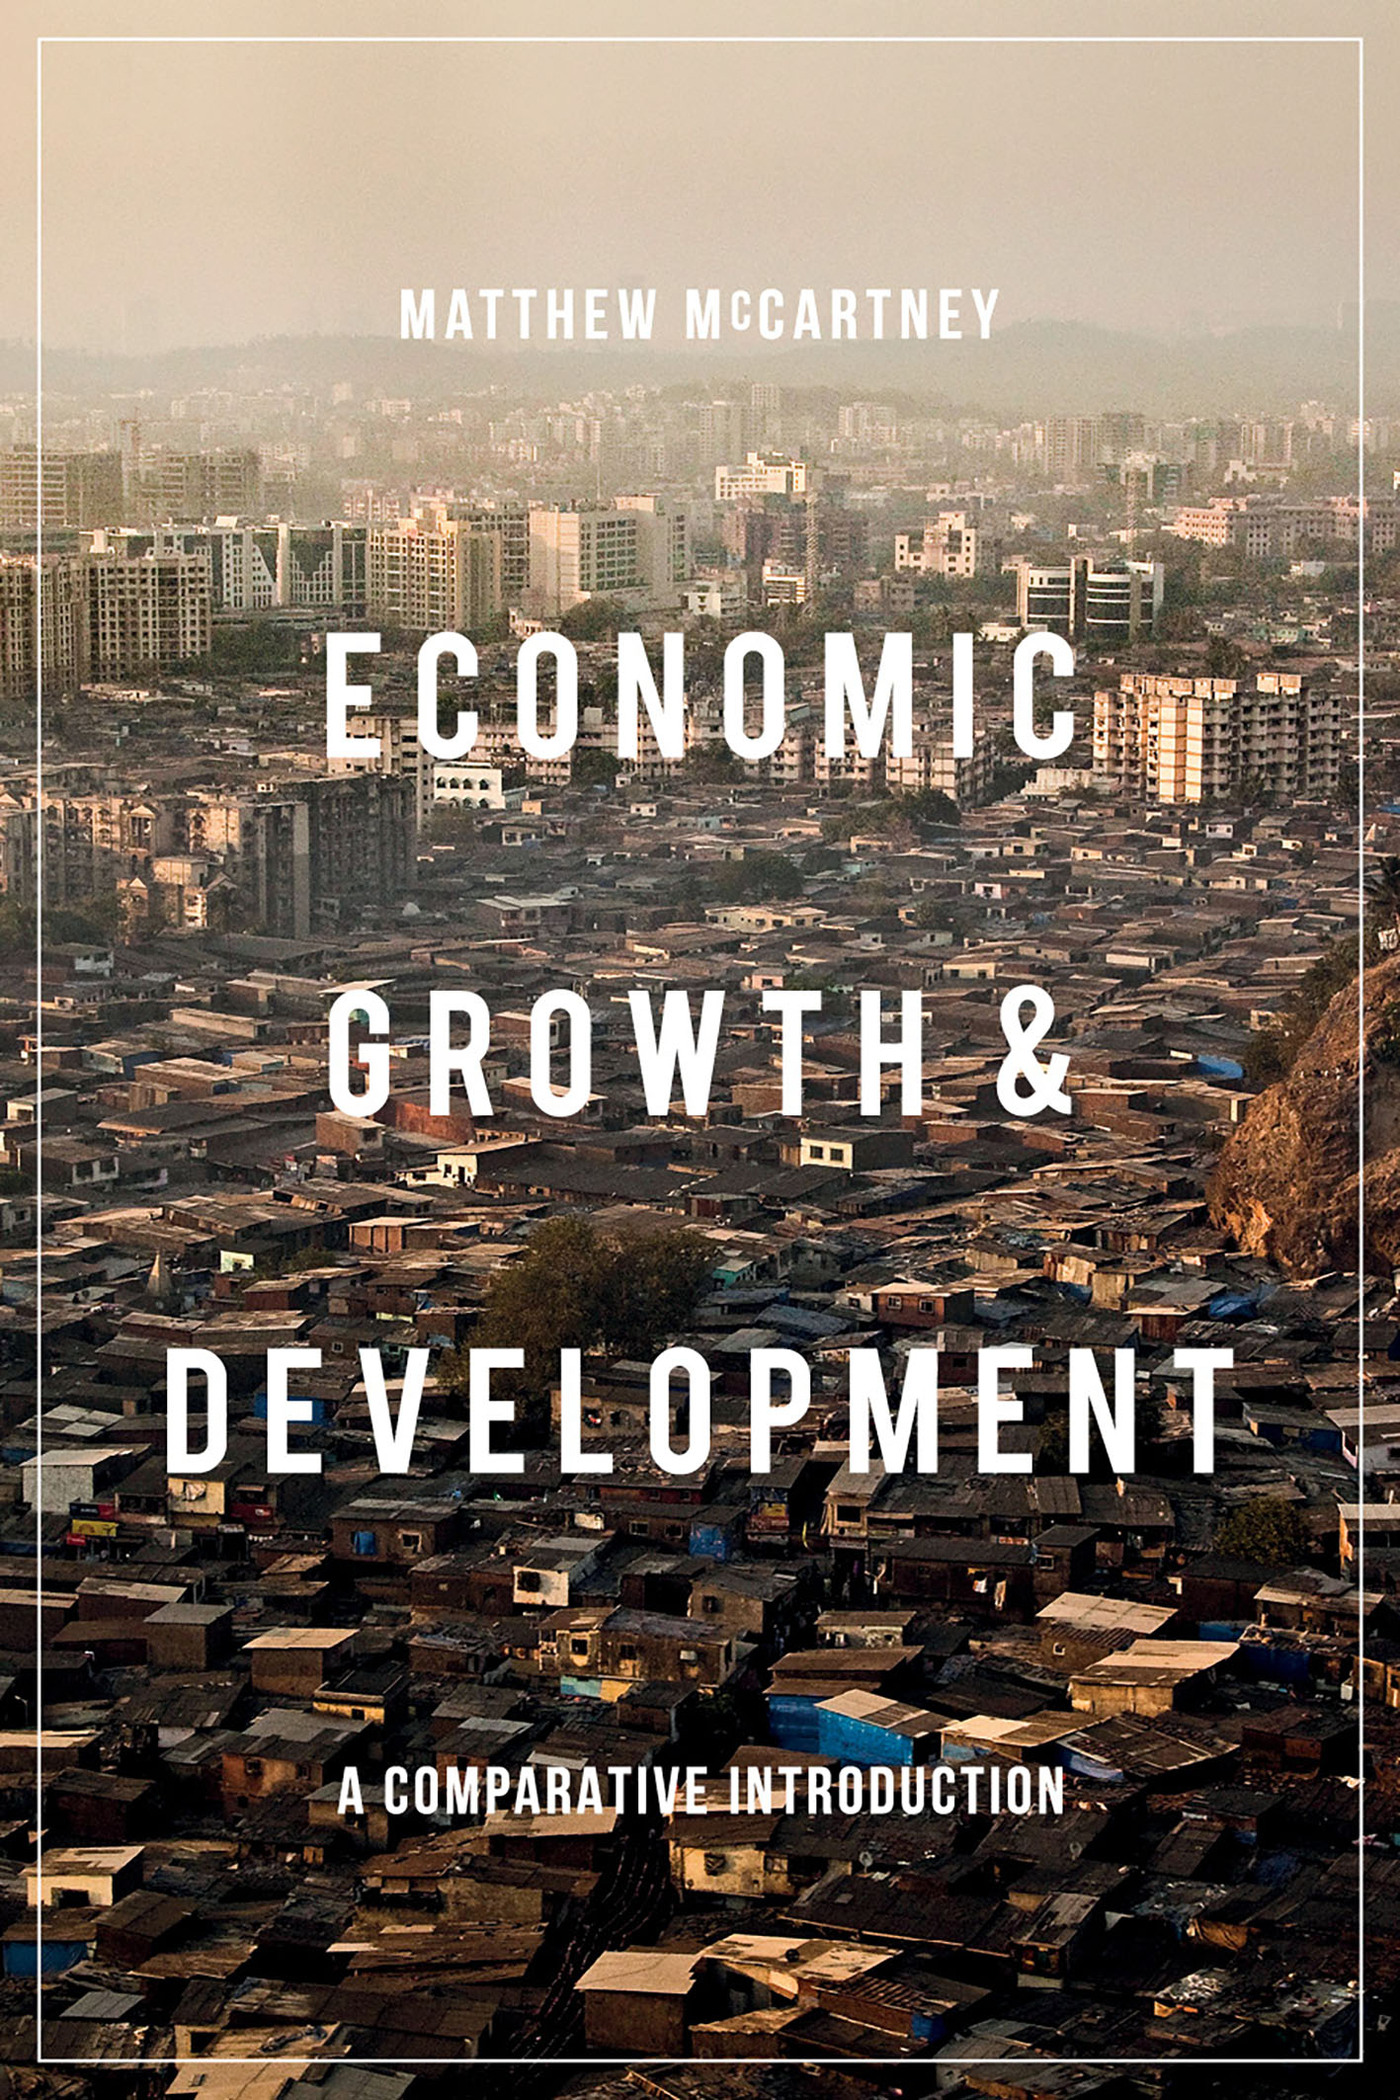 introduction to economic growth Department of economics, massachusetts institute of technology contents preface xi part 1 introduction 1 chapter 1 economic growth and economic development.